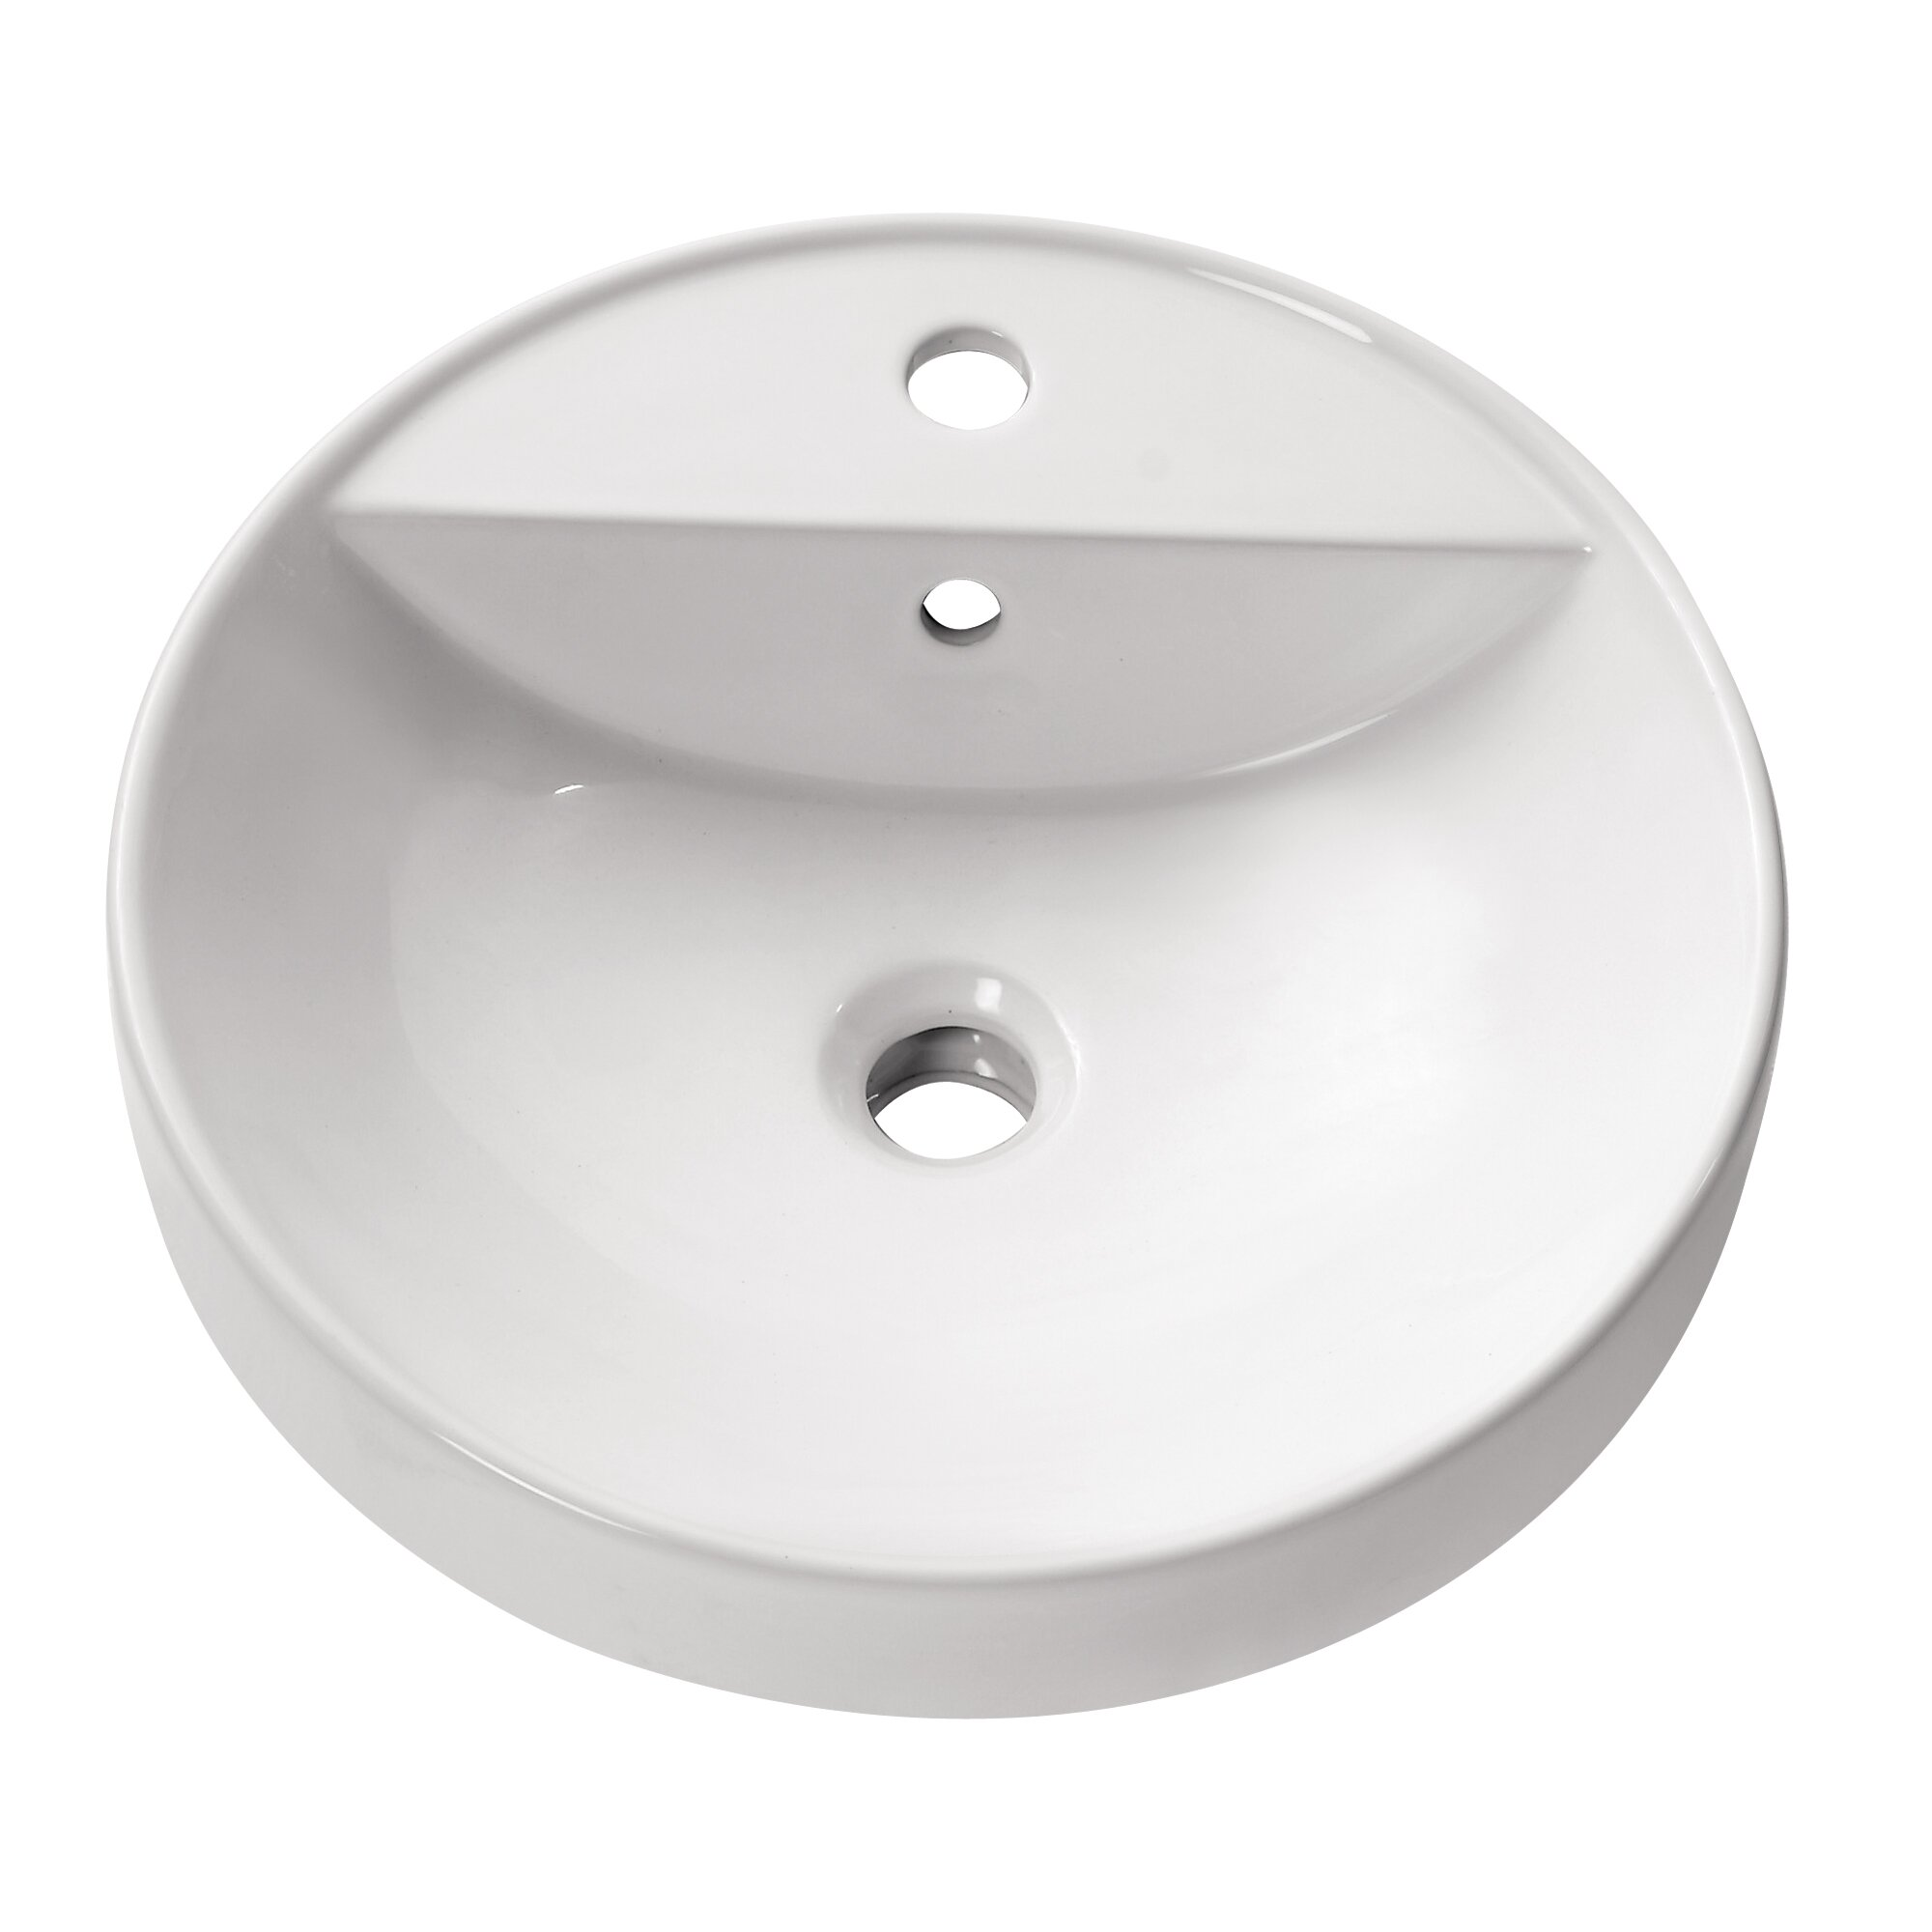 Avanity Semi Recessed Bathroom Sink Reviews Wayfair